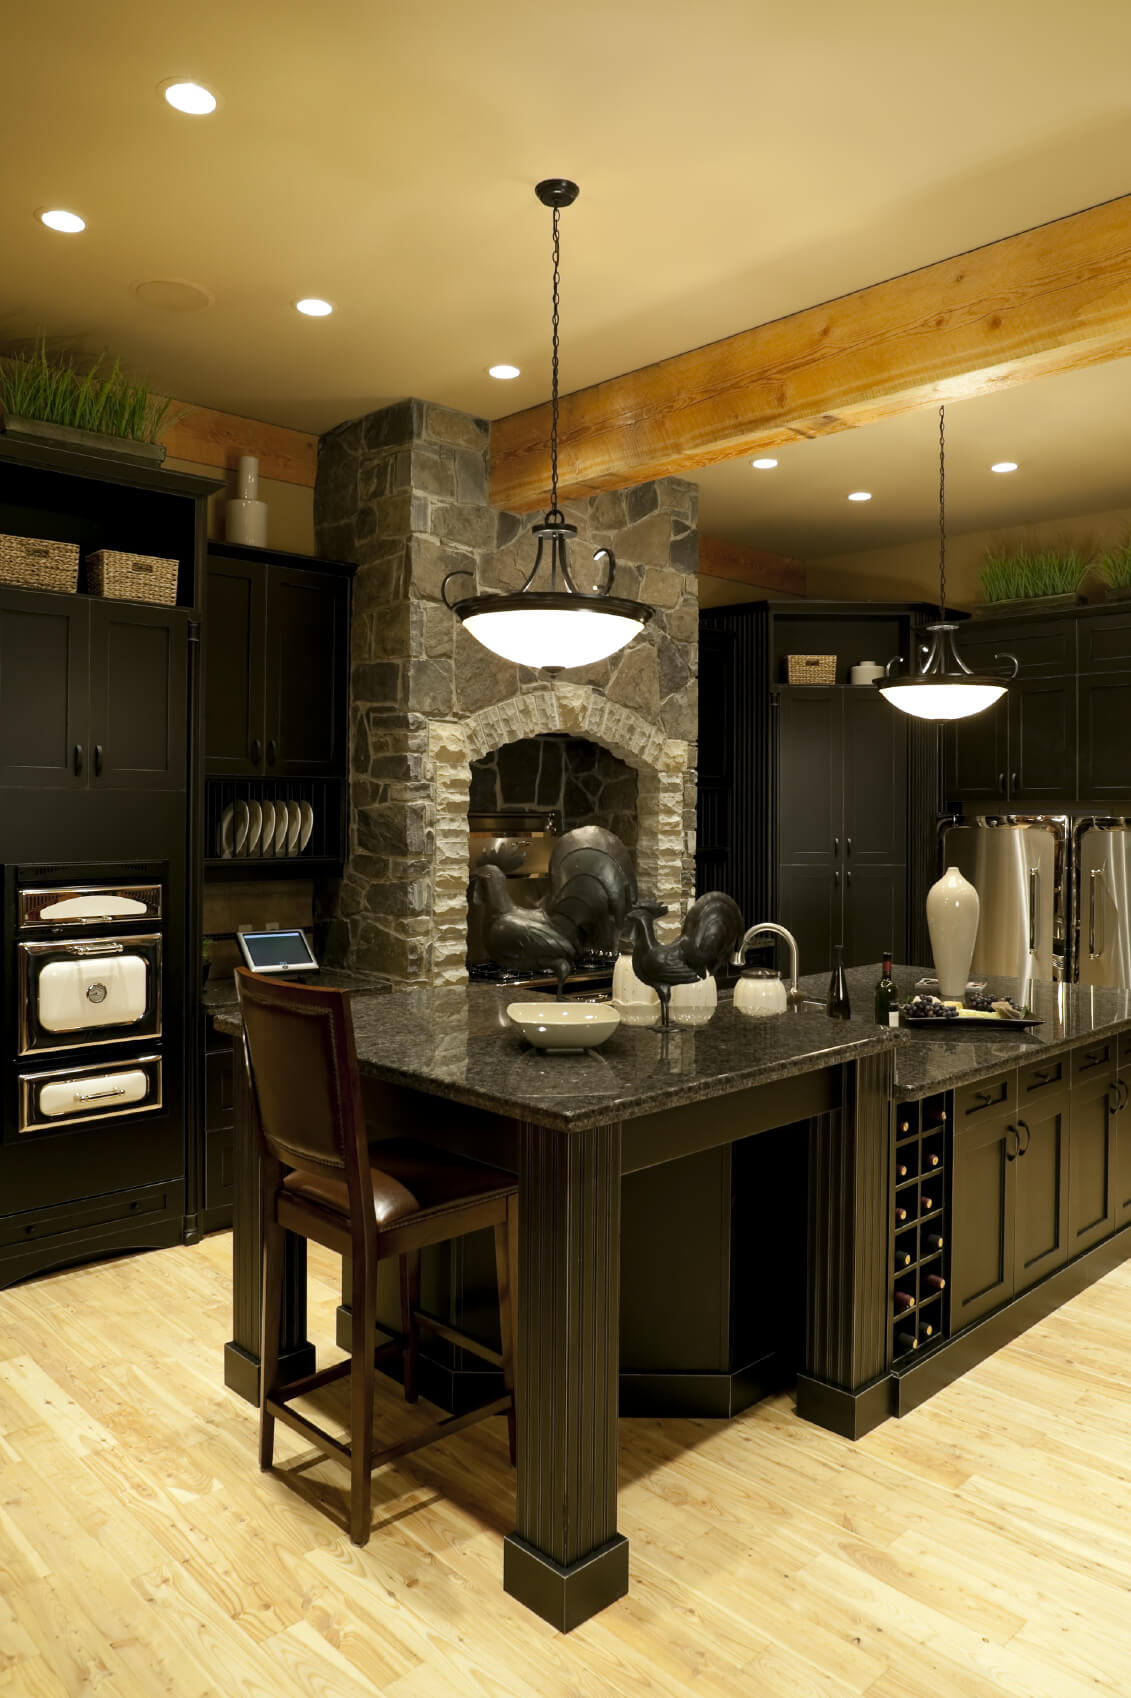 Luxury black kitchen with 2-tier island and light wood ceiling beams